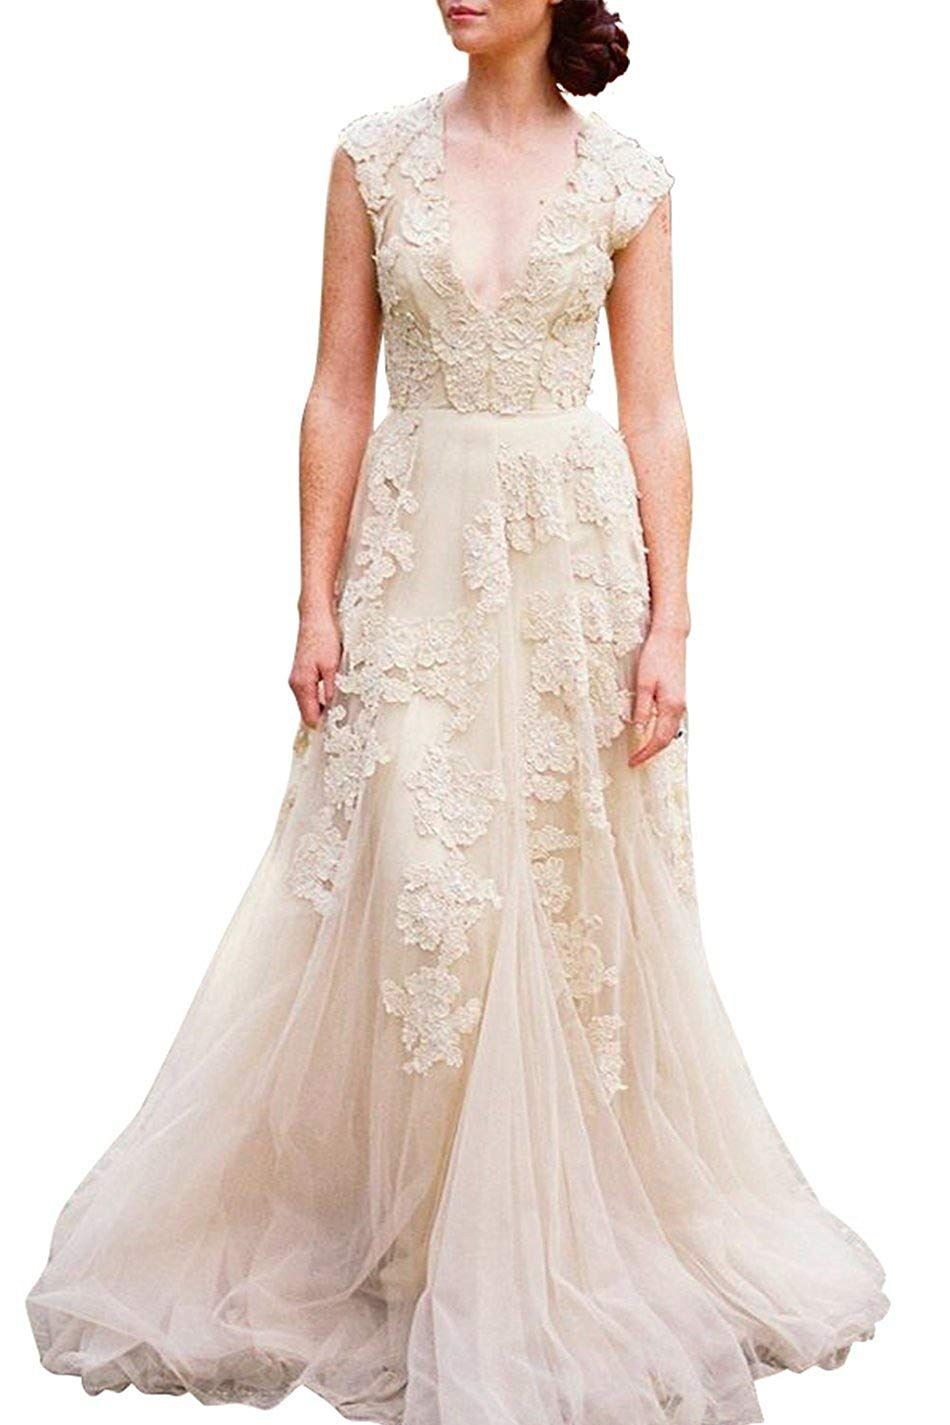 cd4f377f1be Ruolai ASA Bridal Women s Vintage Cap Sleeve Lace Wedding Dress